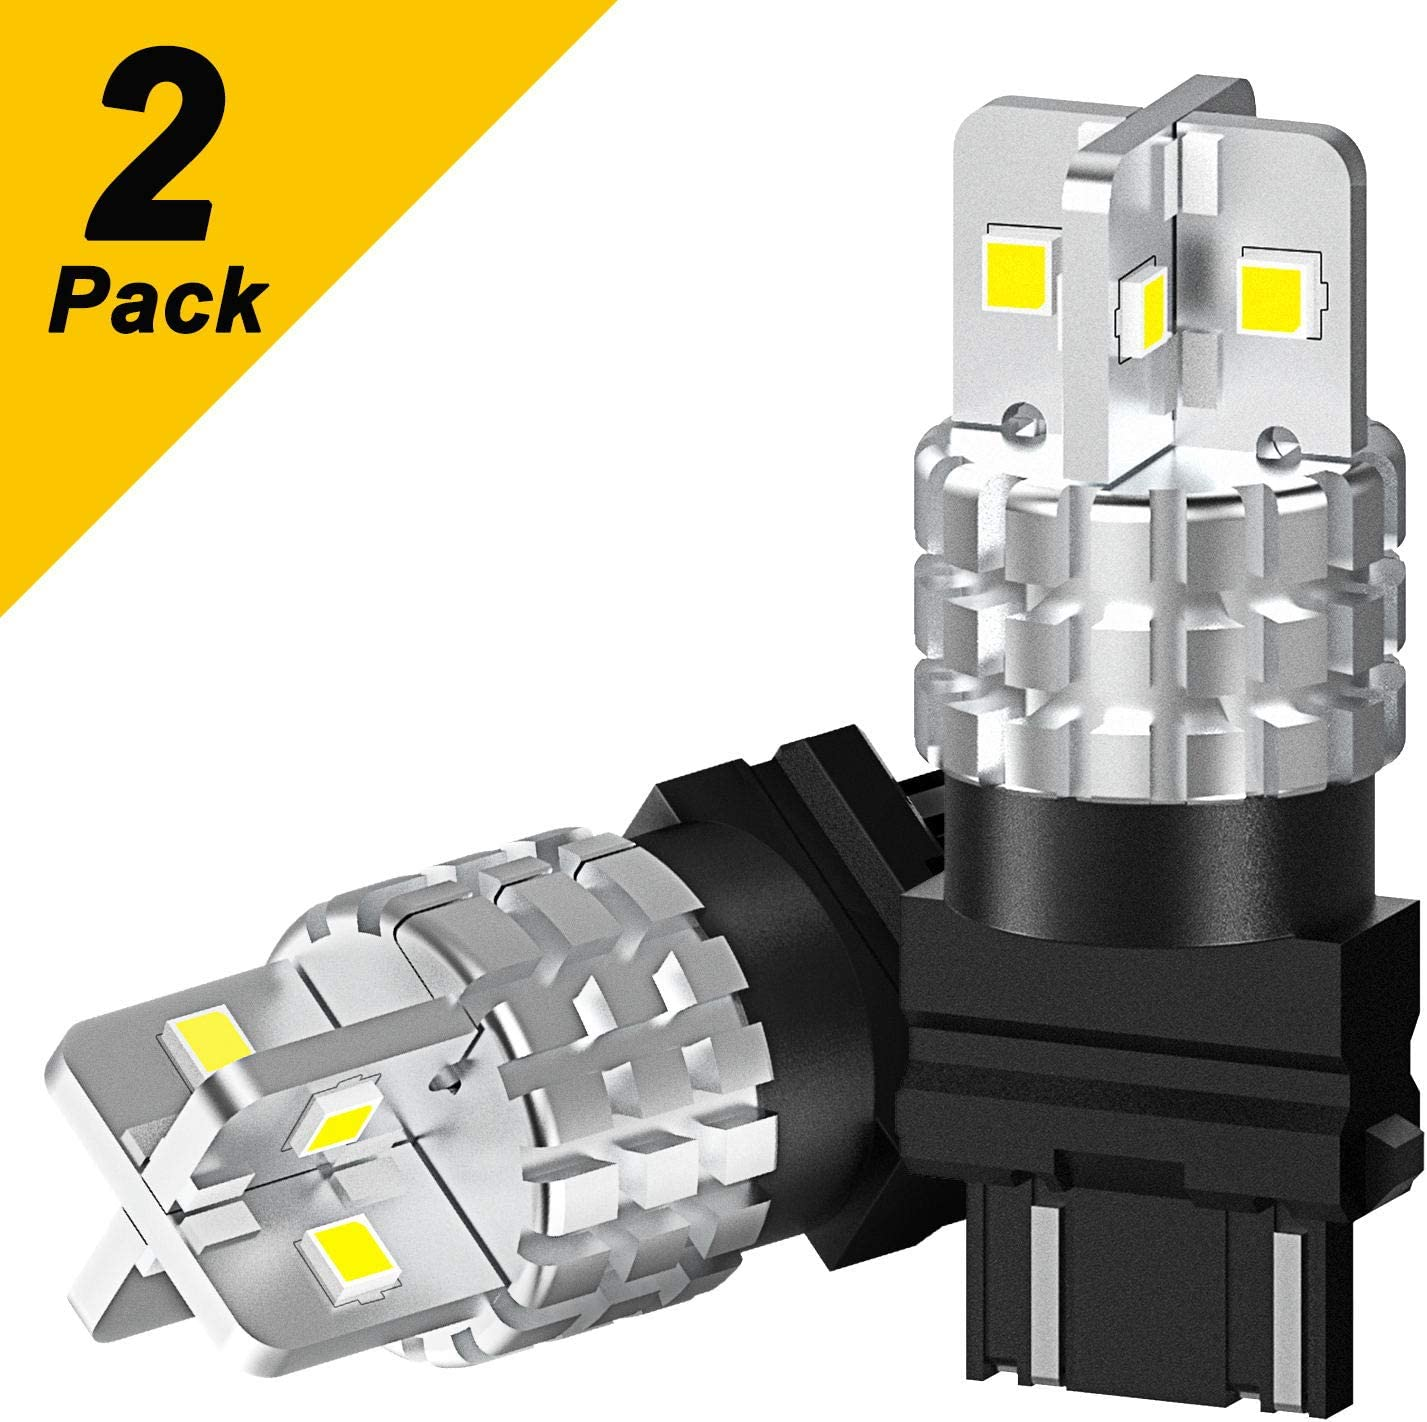 AUXITO-3157-LED-Bulbs White Super Bright 3156 3056 3057 4157 Back Up Reverse Light LED Bulbs 360 Degree Lighting 3030SMD Turn Signal Light Brake Tail DRL Parking Light 2 Pack